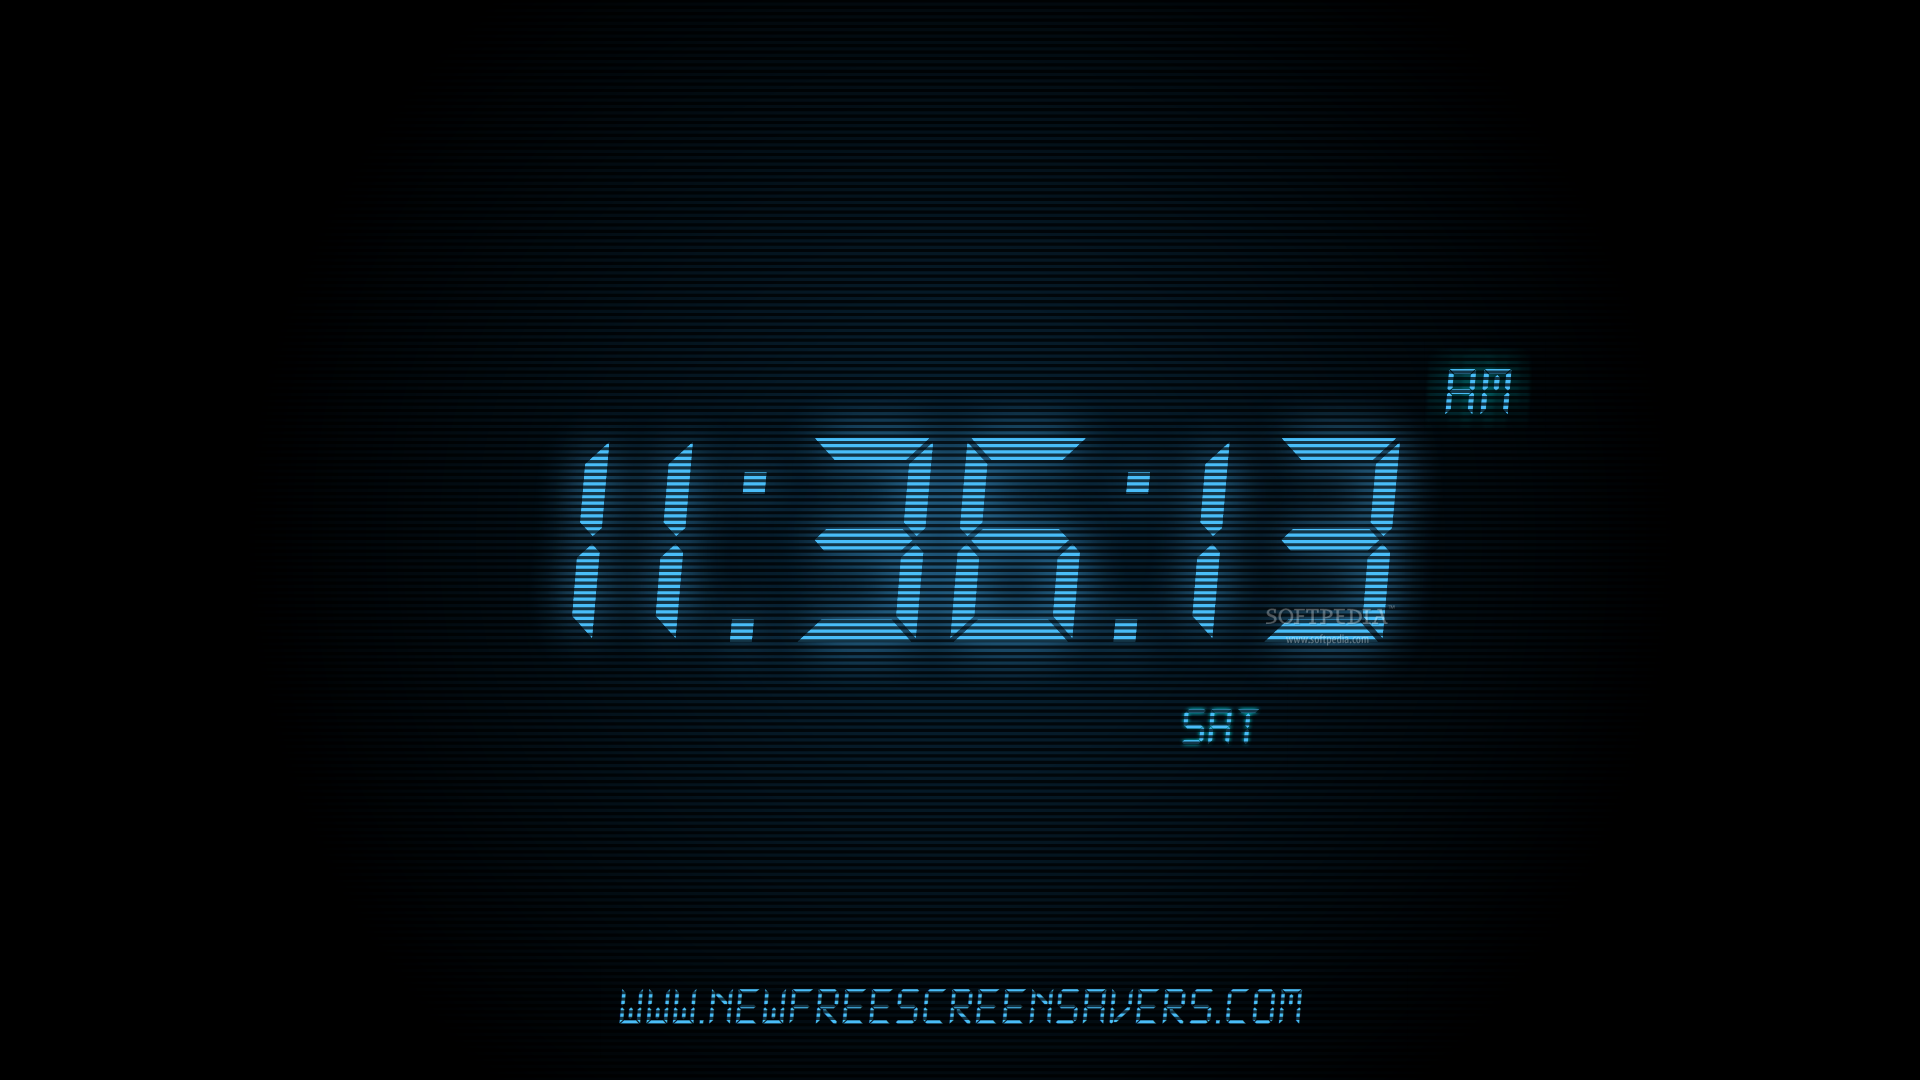 nfsOldDigitalClock Download   Softpedia 1920x1080